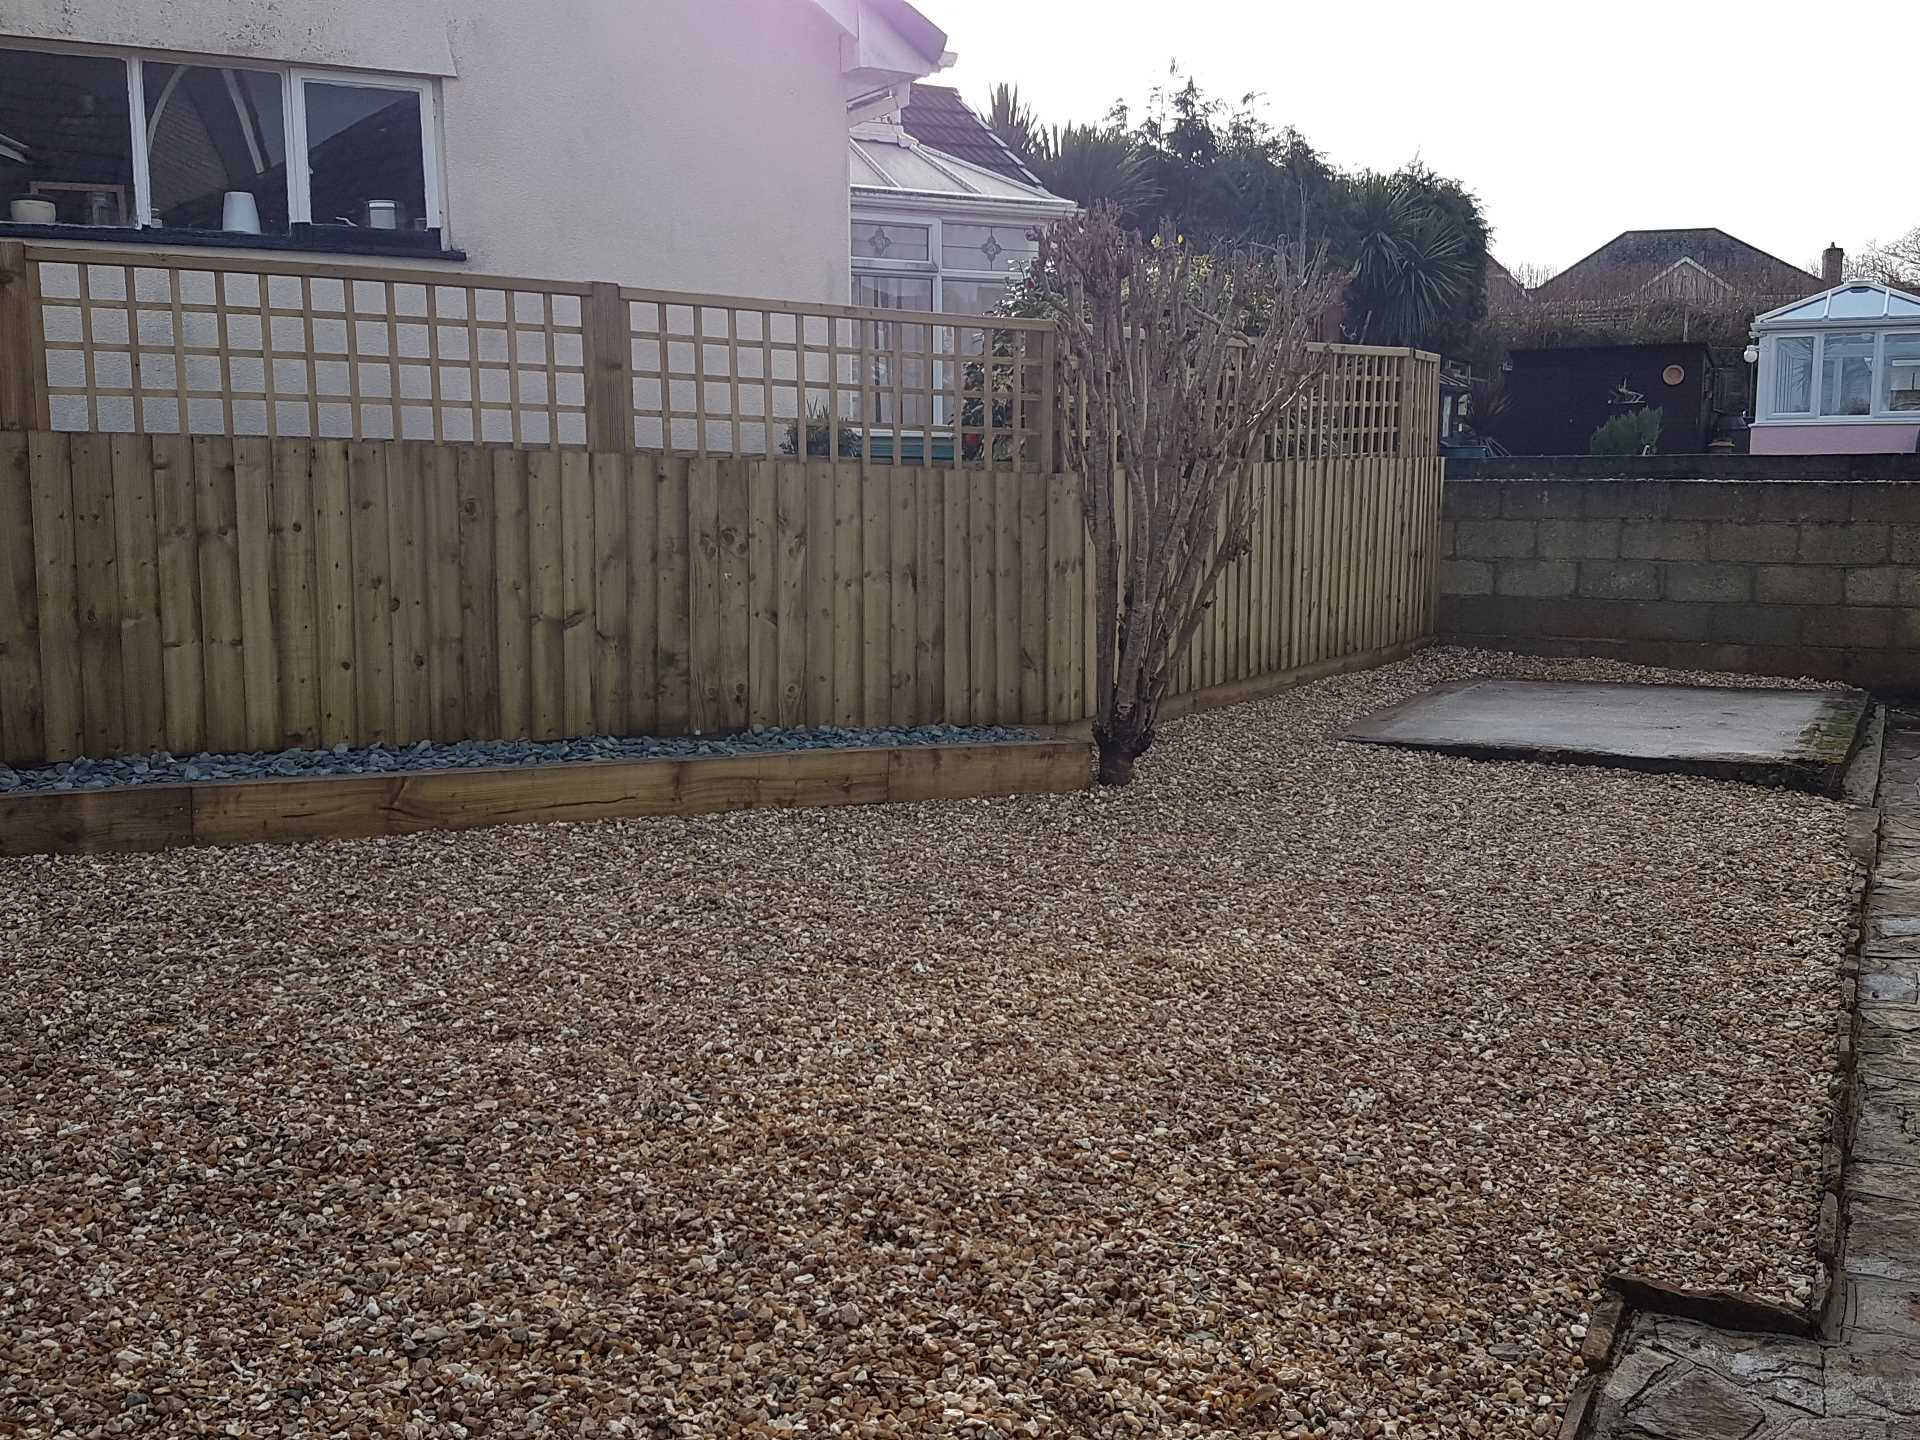 Gravel mulch, feather edge fence